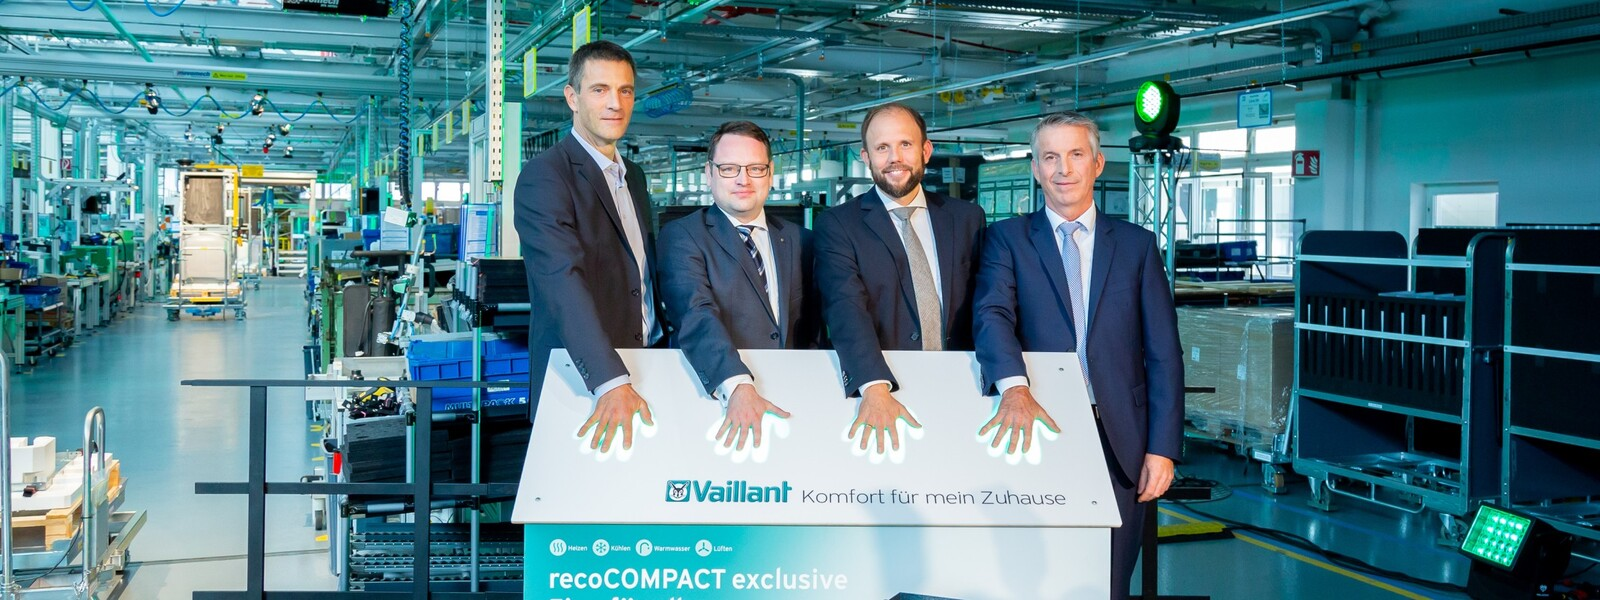 https://www.vaillant-group.com/newsroom/pressemitteilungen/2018/eroeffnung-waermepumpen-fertigung/2018-10-10-pb-vaillant-einweihung-waermepumpen-fertigung-1336458-format-24-9@1600@desktop.jpg